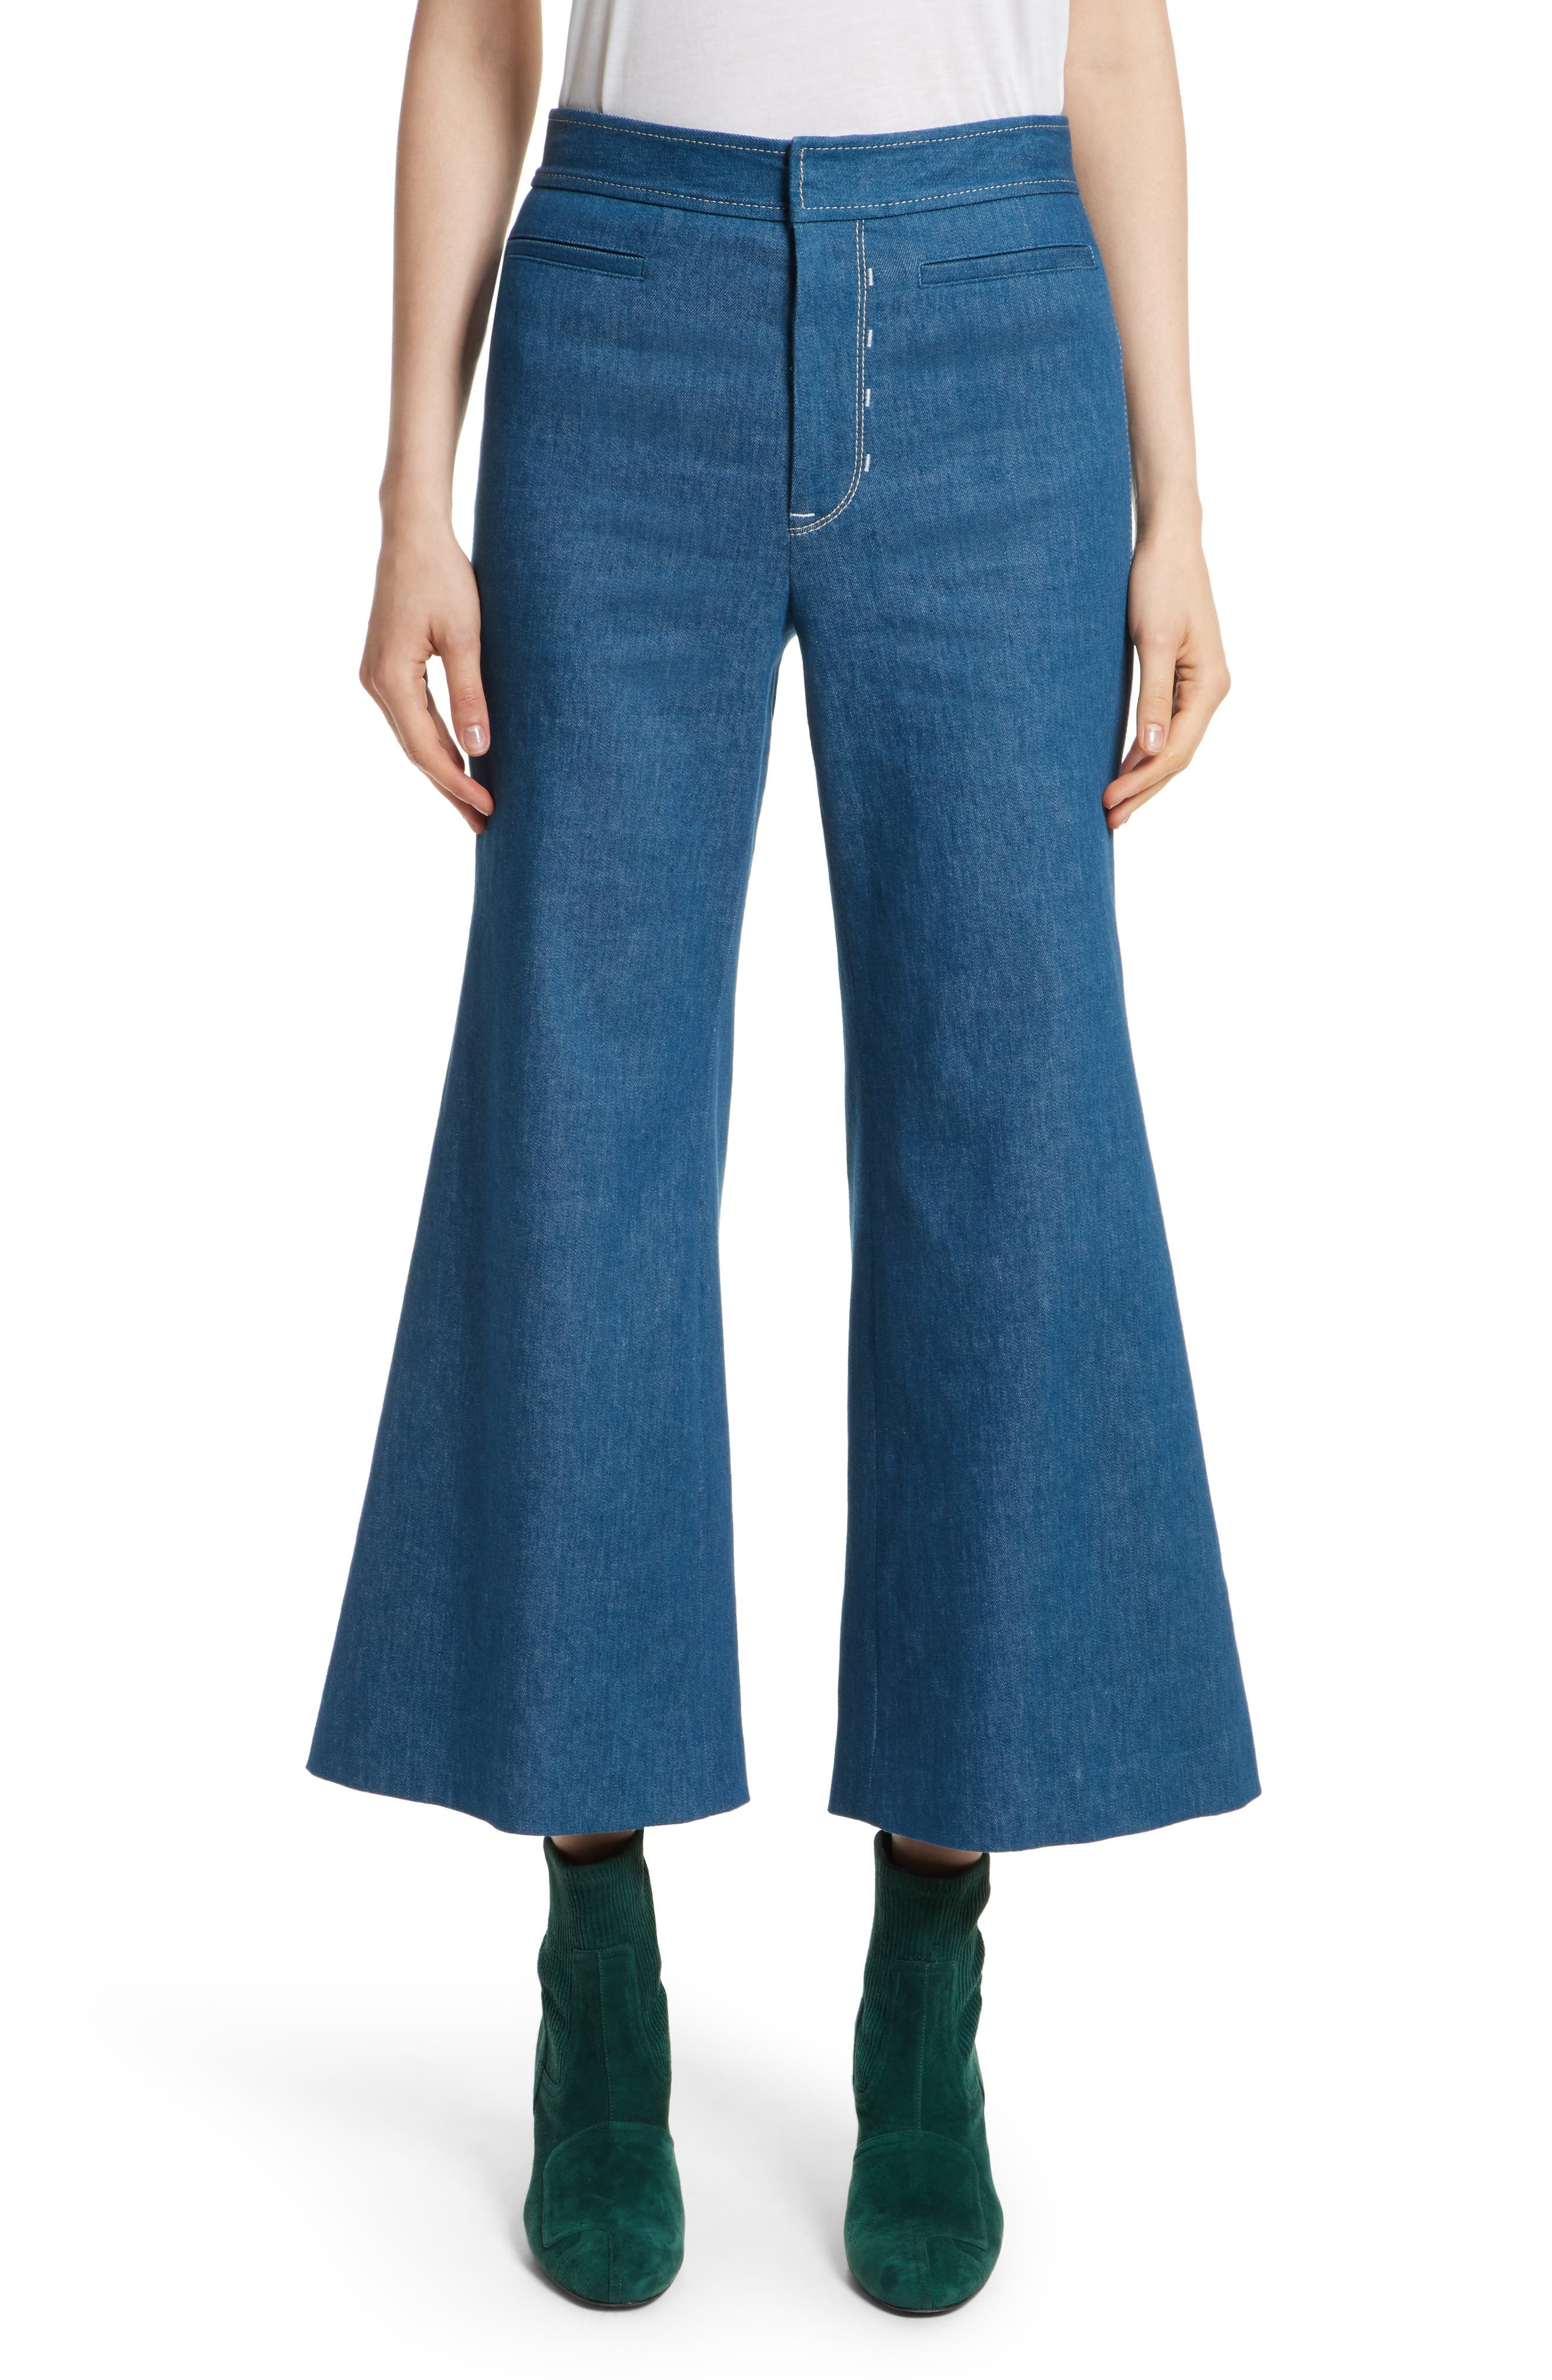 Main Image - Colovos Crop Flare Jeans (Sea Green)